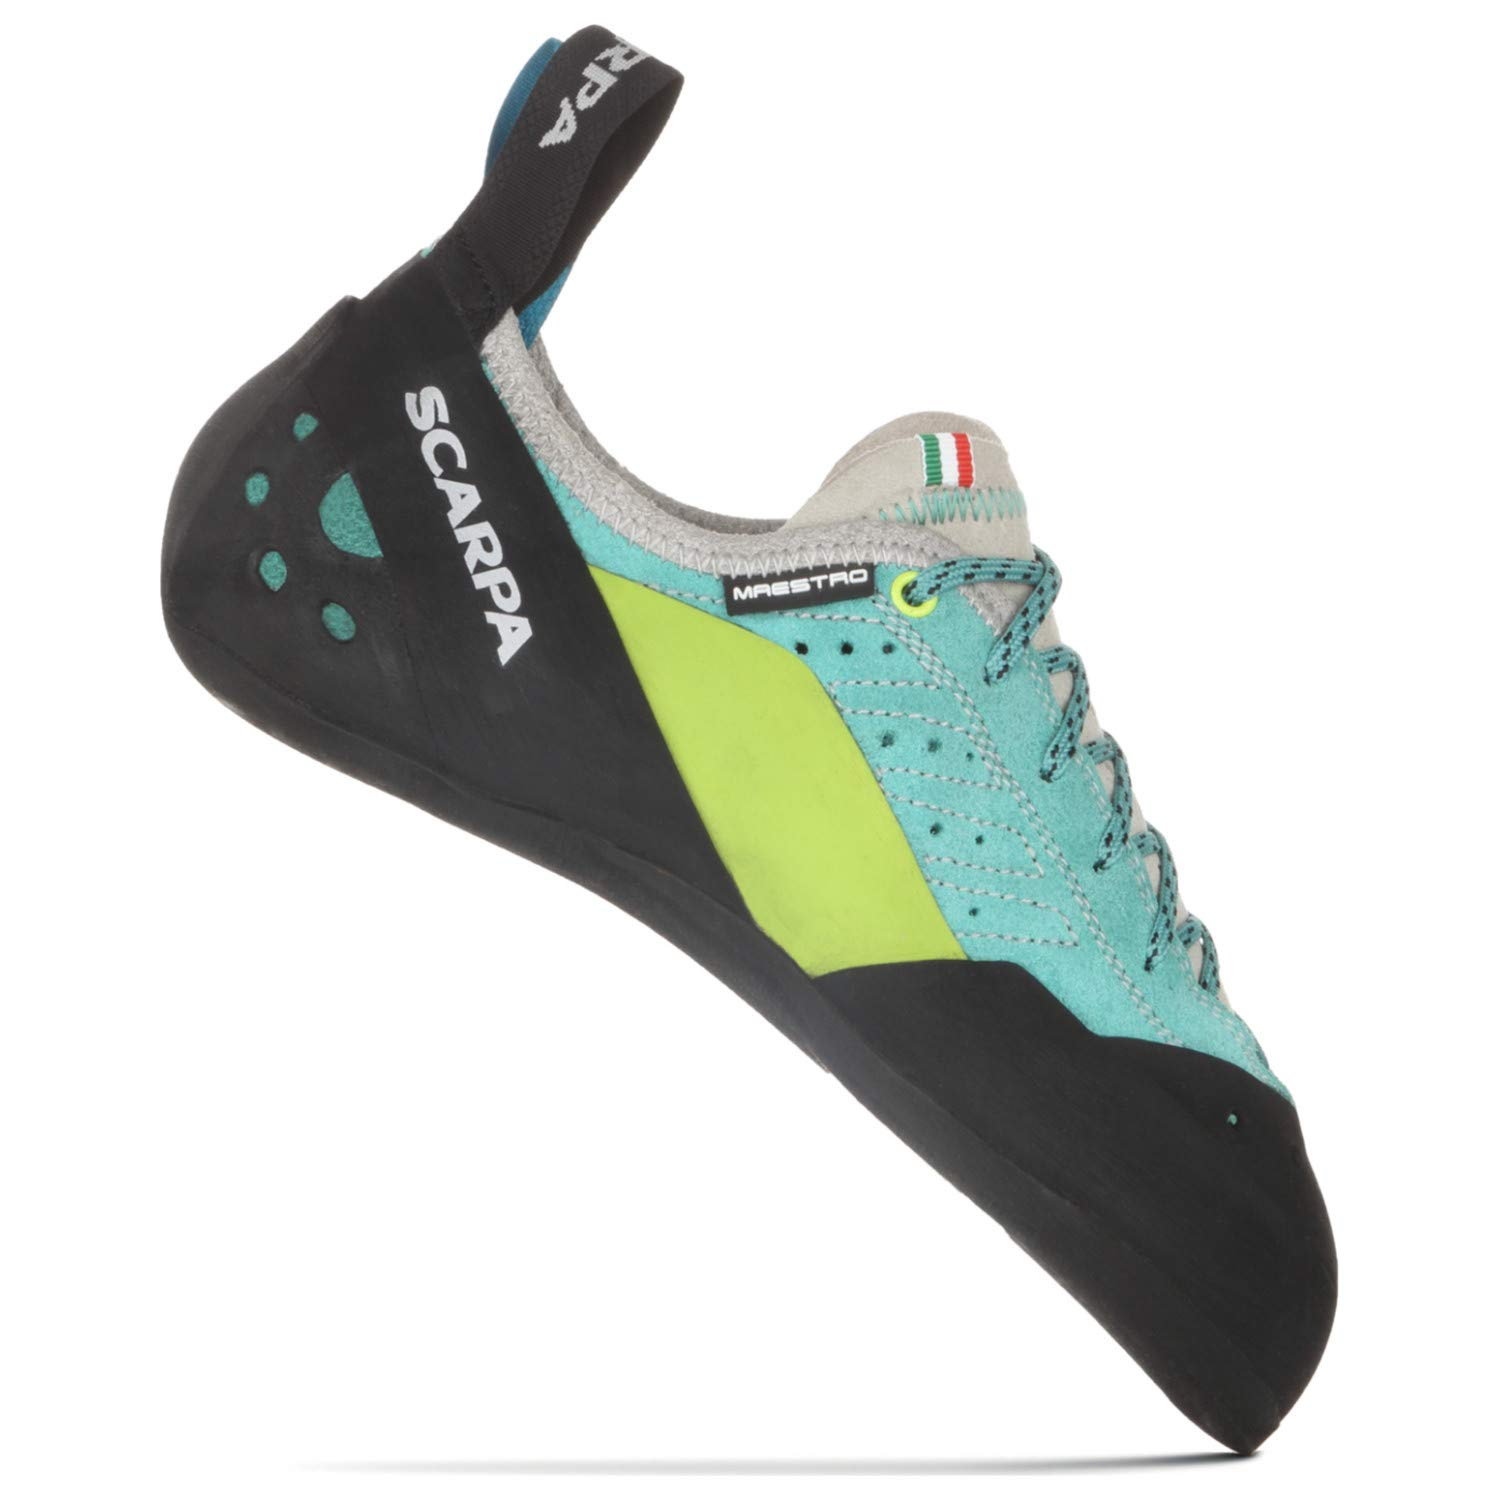 SCARPA Maestro ECO Climbing Shoe - Women's Green Blue 37.5 by SCARPA